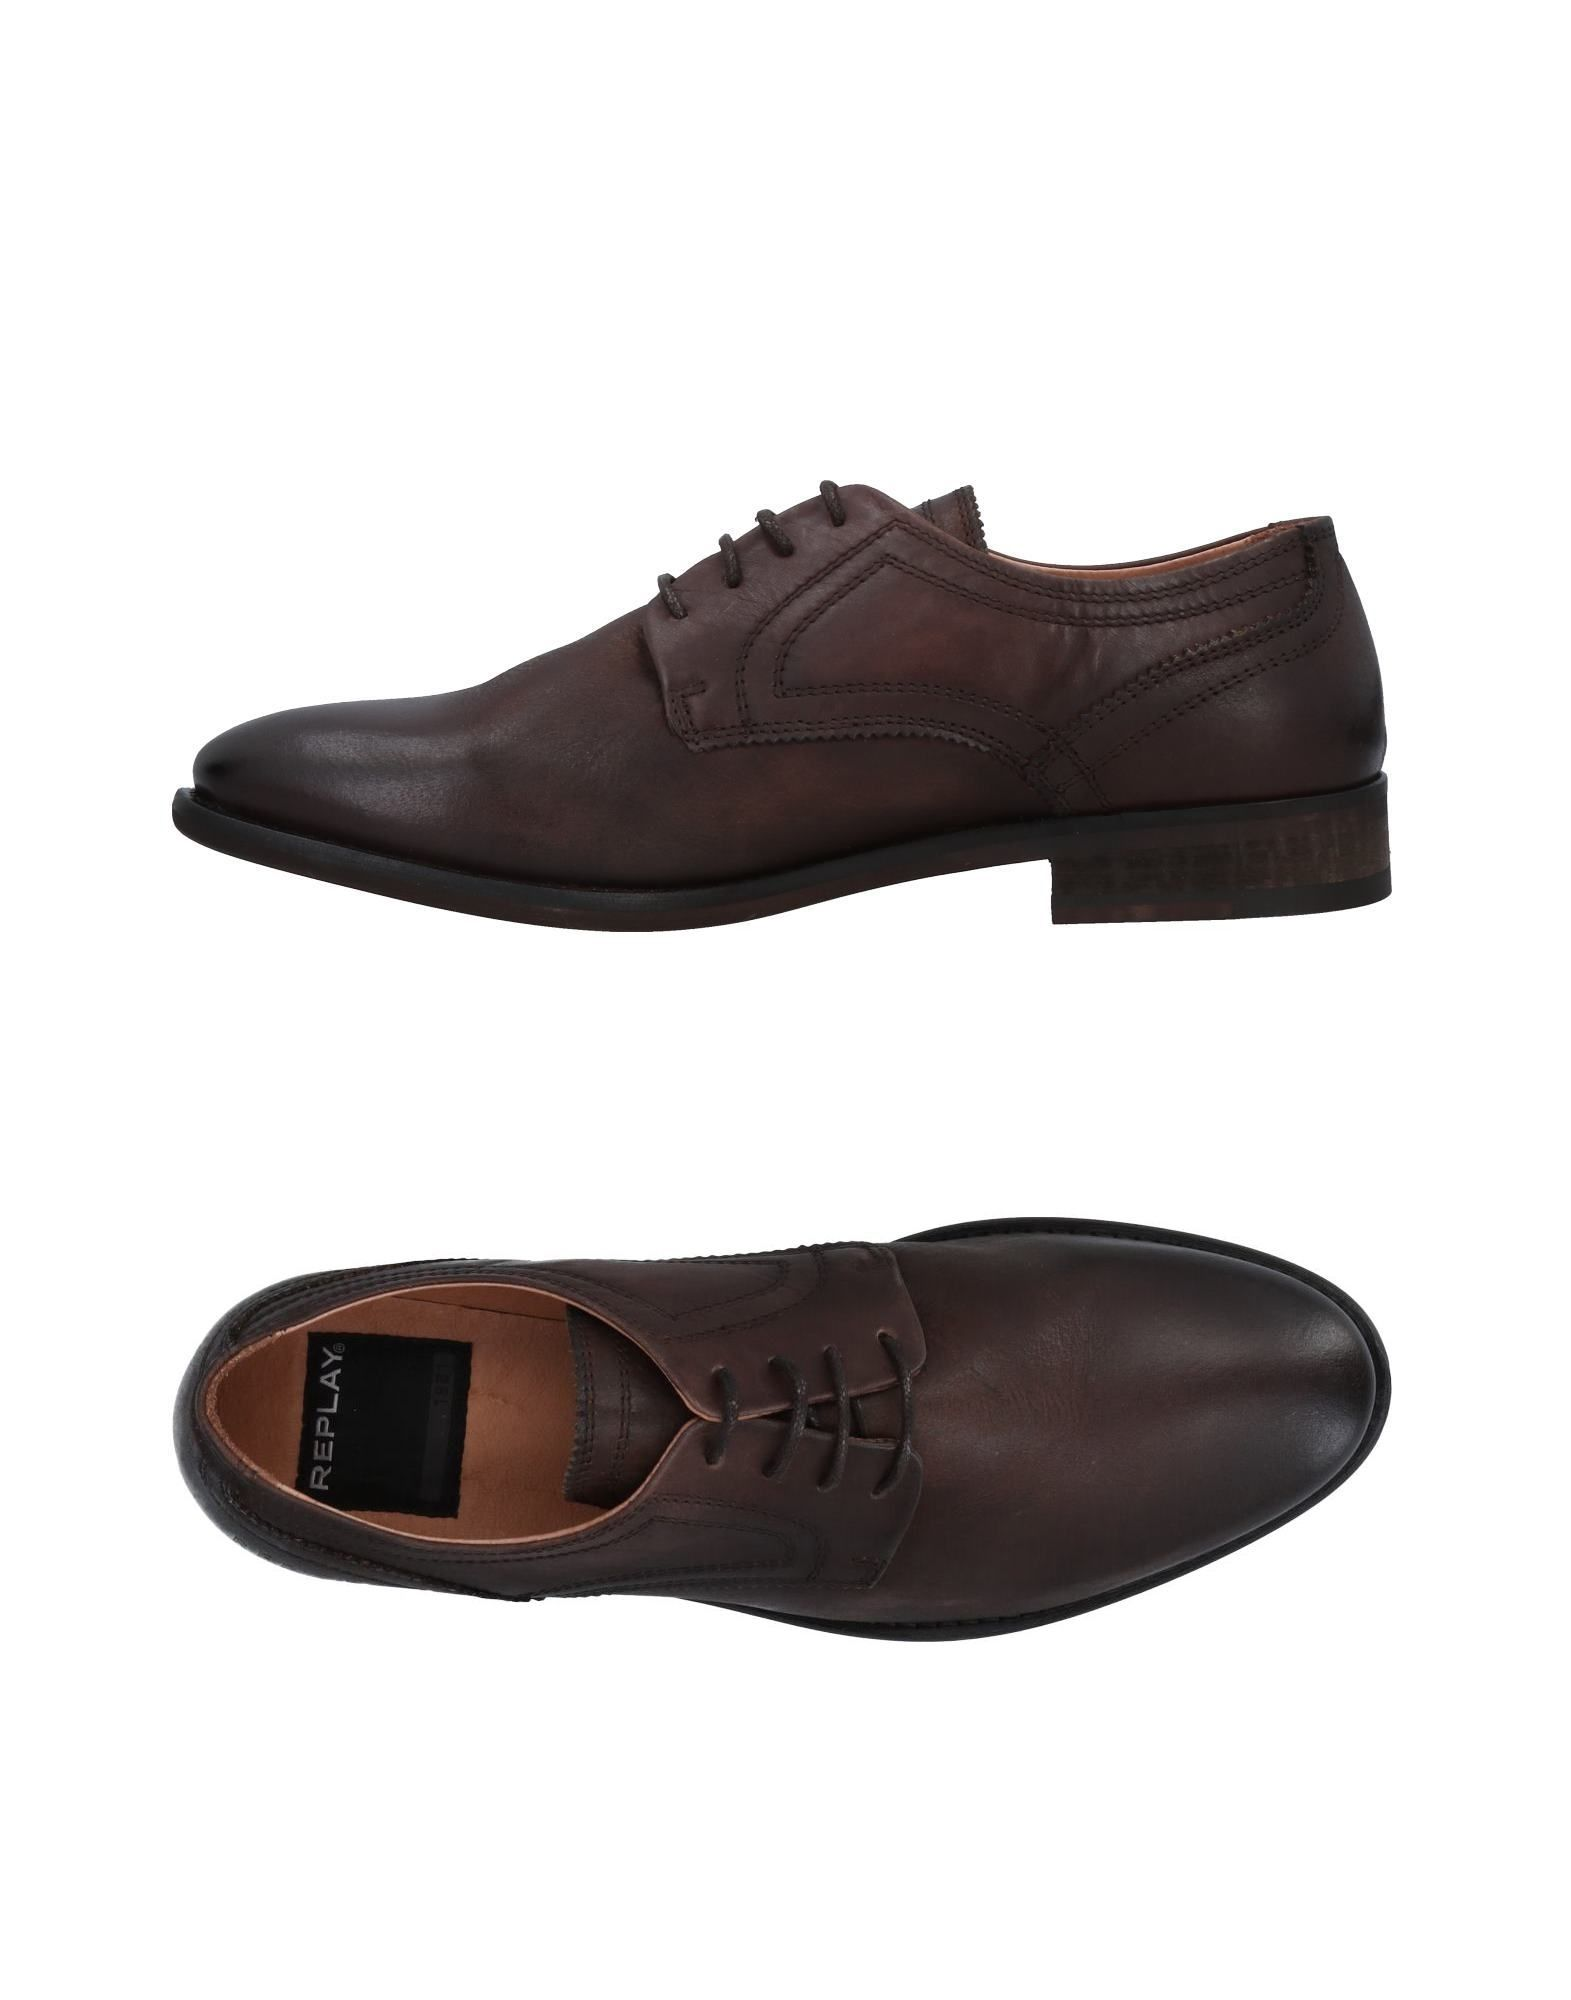 11493950DO Replay Schnürschuhe Herren  11493950DO  26d8a4